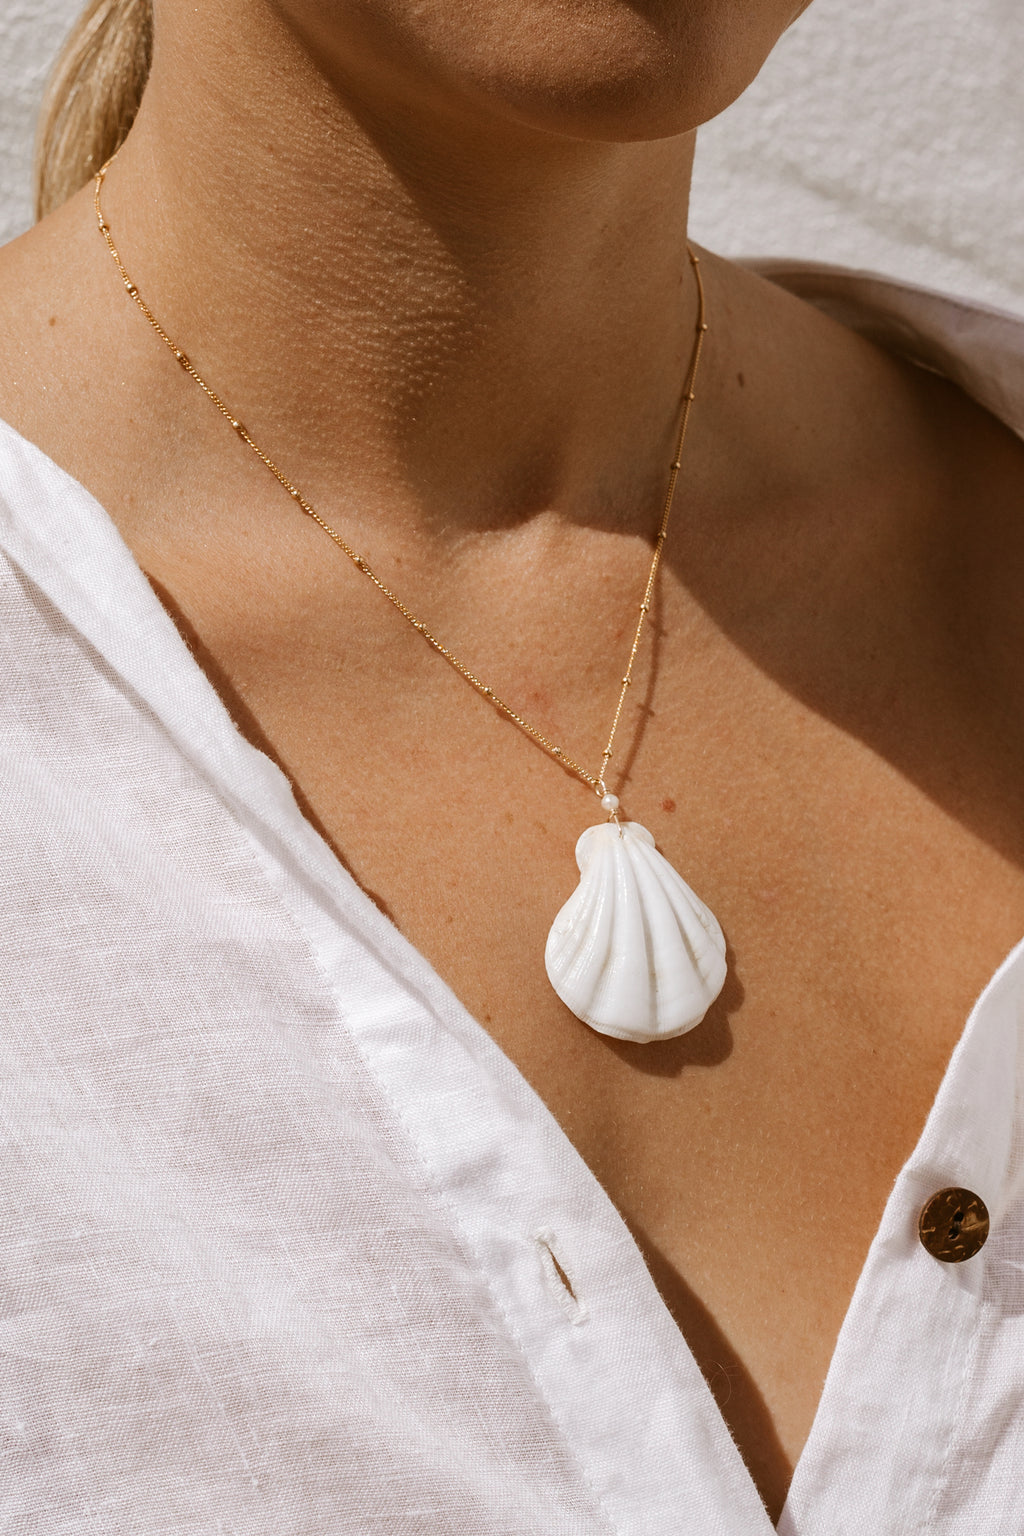 White Shell Satellite Necklace  - Gold fill